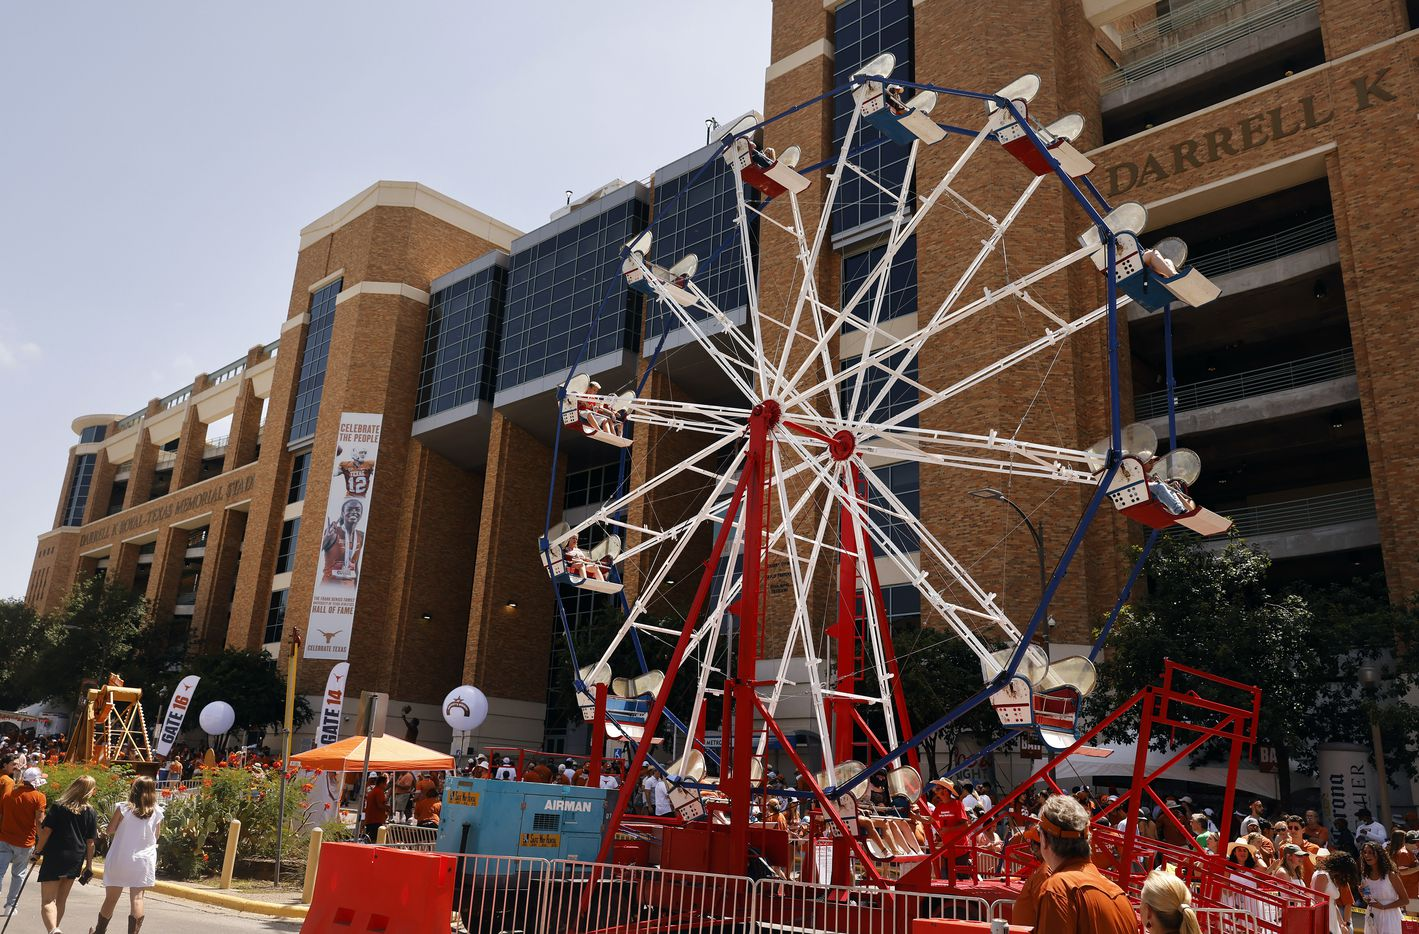 Fans ride the ferris wheel erected along Smokey's Midway outside of DKR-Texas Memorial Stadium in Austin, Saturday, September 4, 2021. The Longhorns were facing the Louisiana-Lafayette Ragin Cajuns. (Tom Fox/The Dallas Morning News)